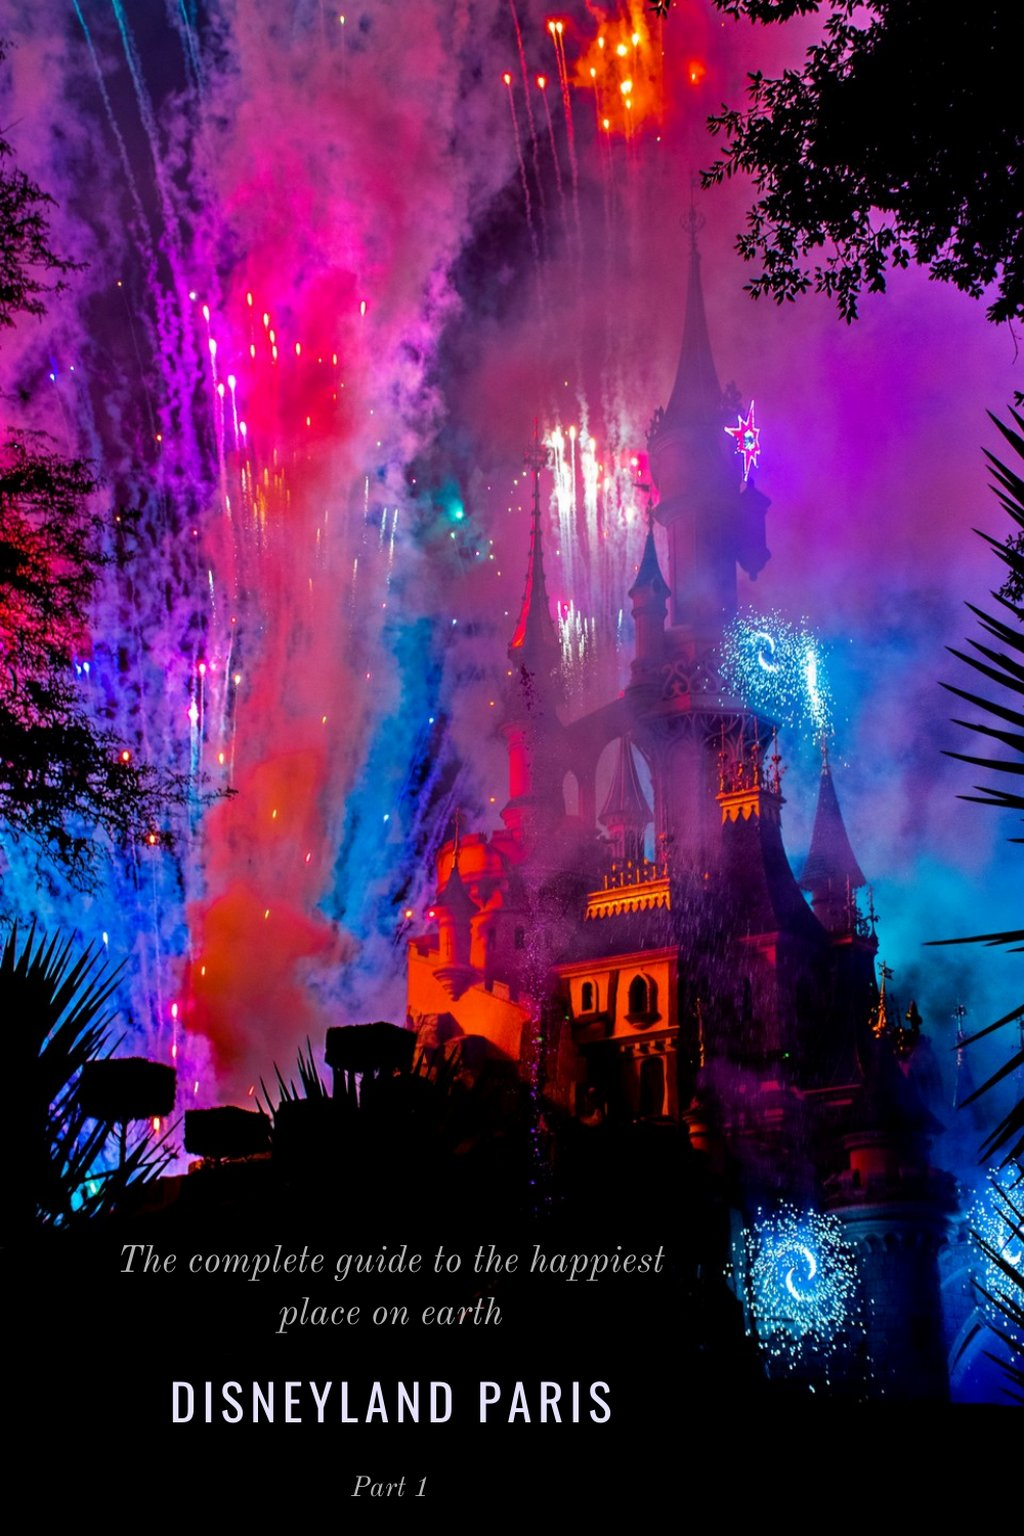 The complete guide to the happiest place on earth - Disneyland Paris! Part 1